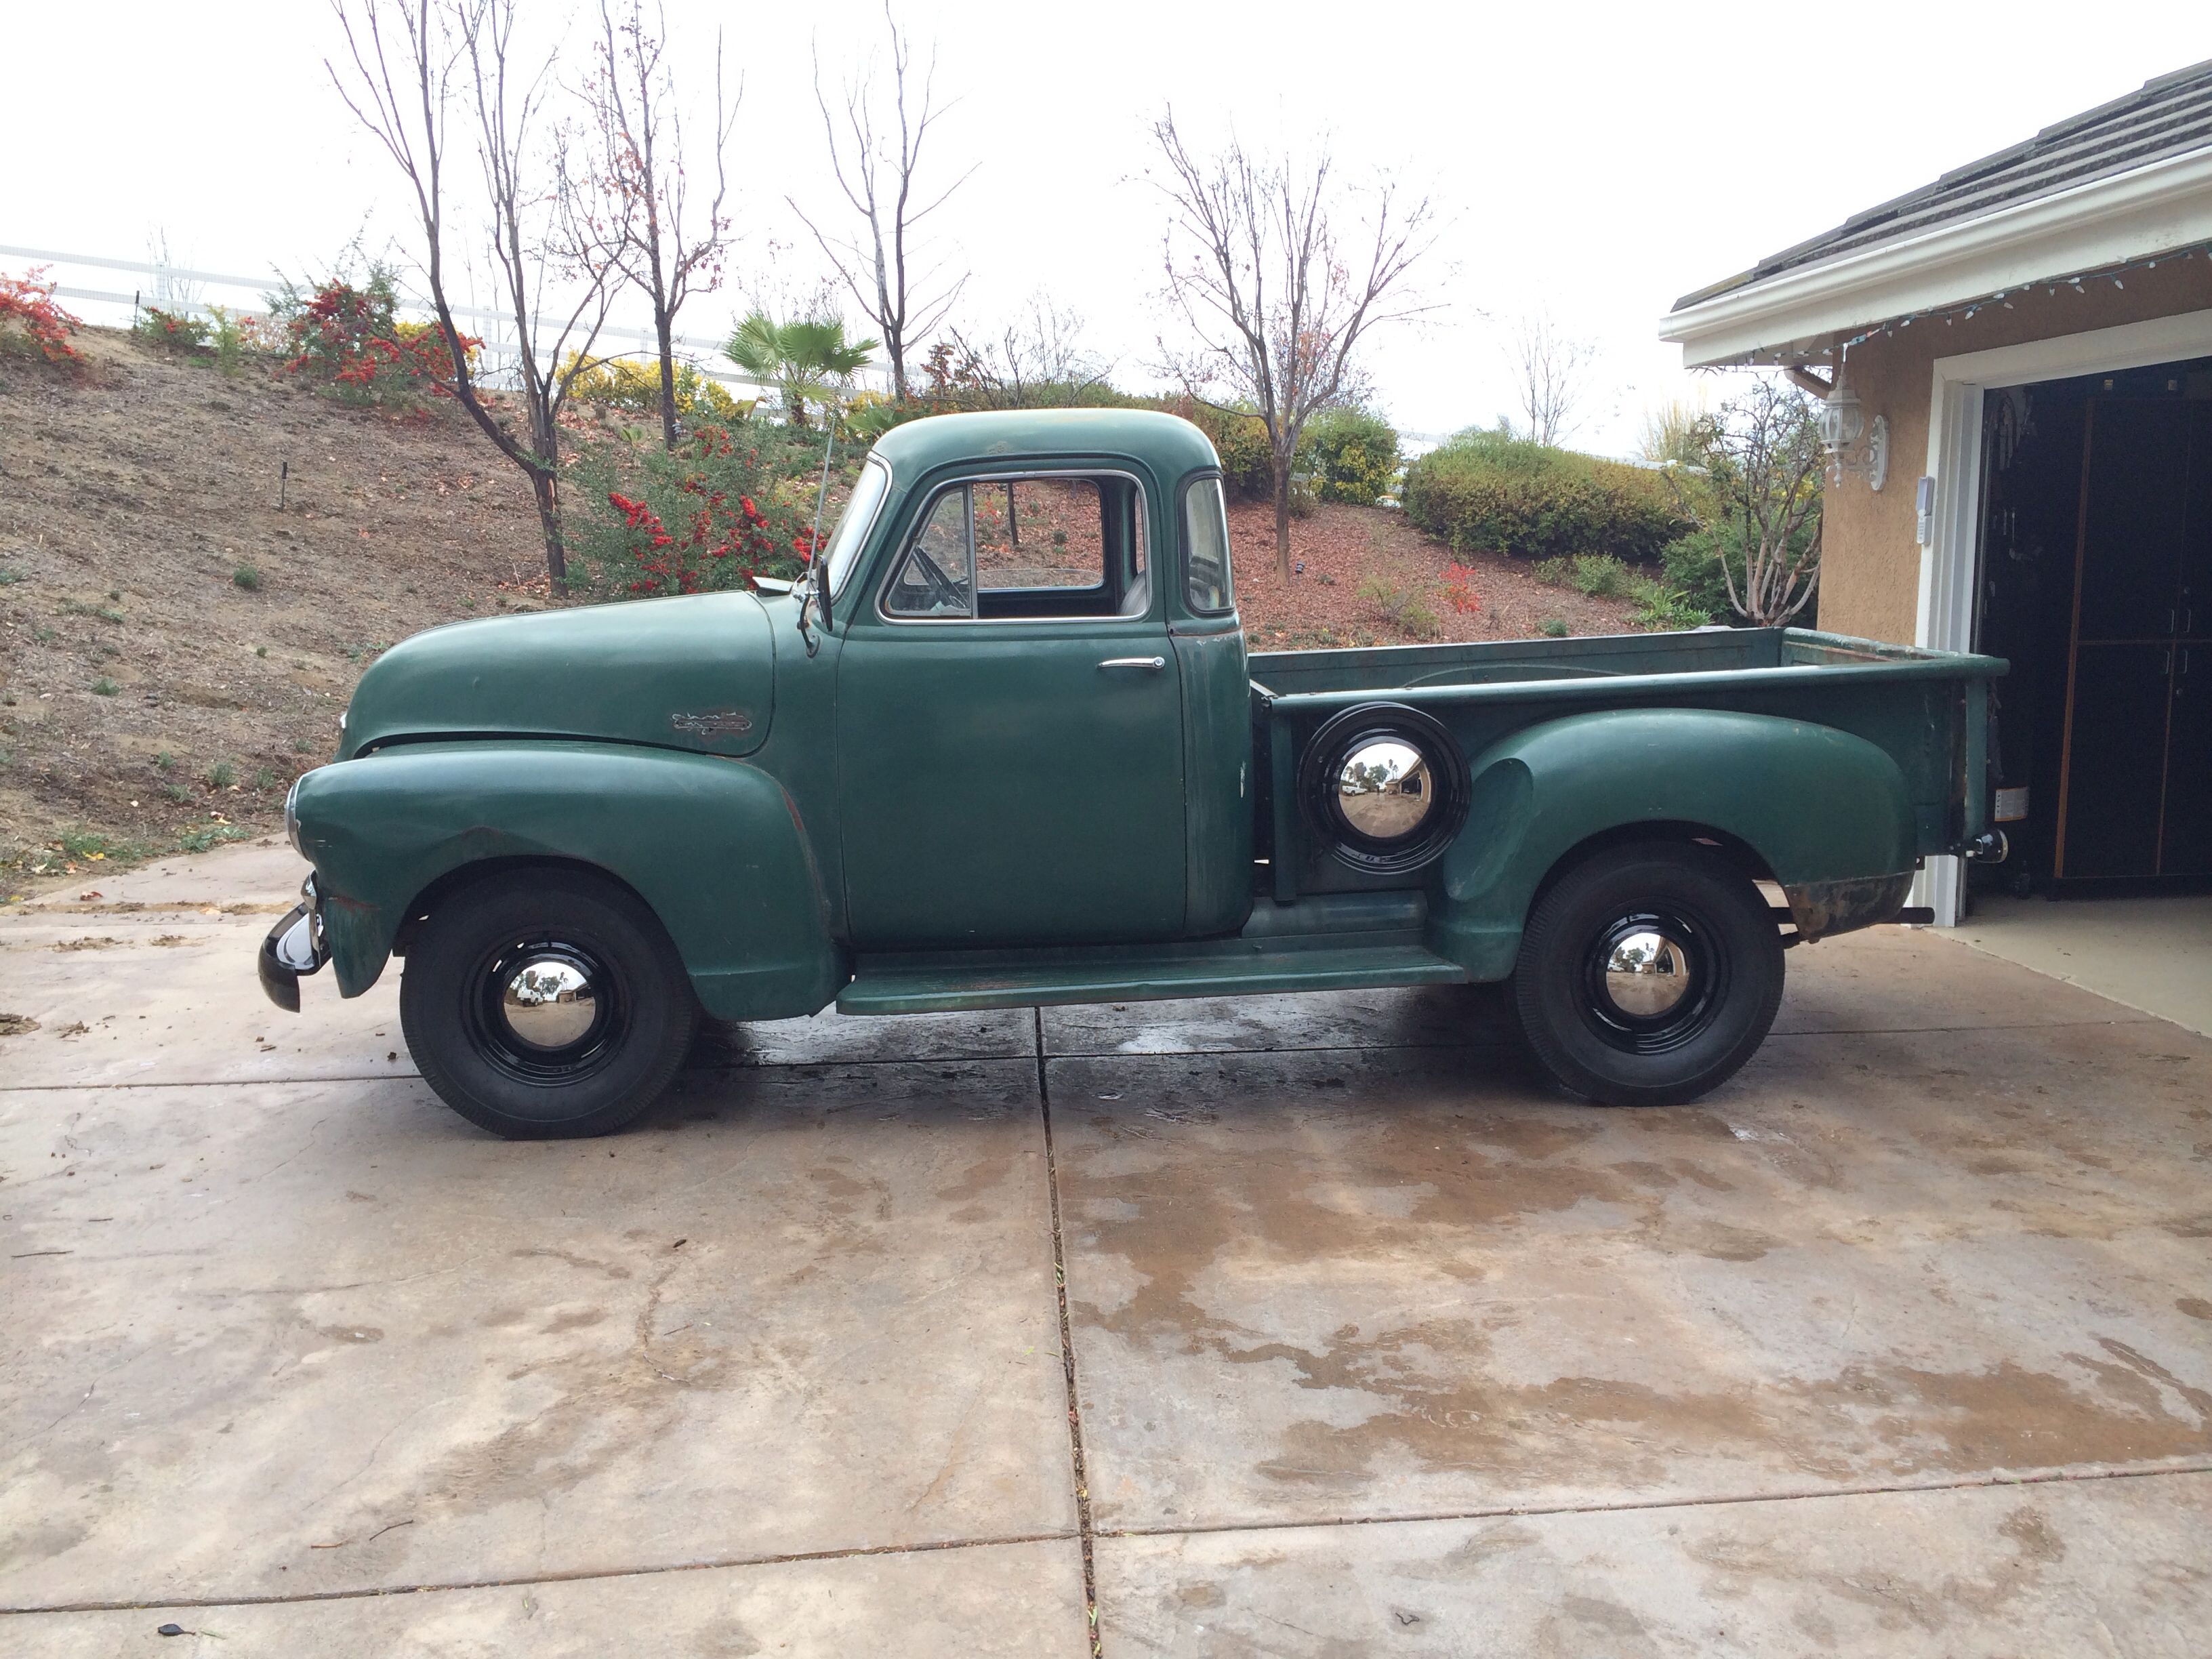 Spare Tire Back Ordered So Heres One Without 1954 Chevy Five Window Pickup 54 Chevy Truck Chevy Trucks Chevy Trucks Older